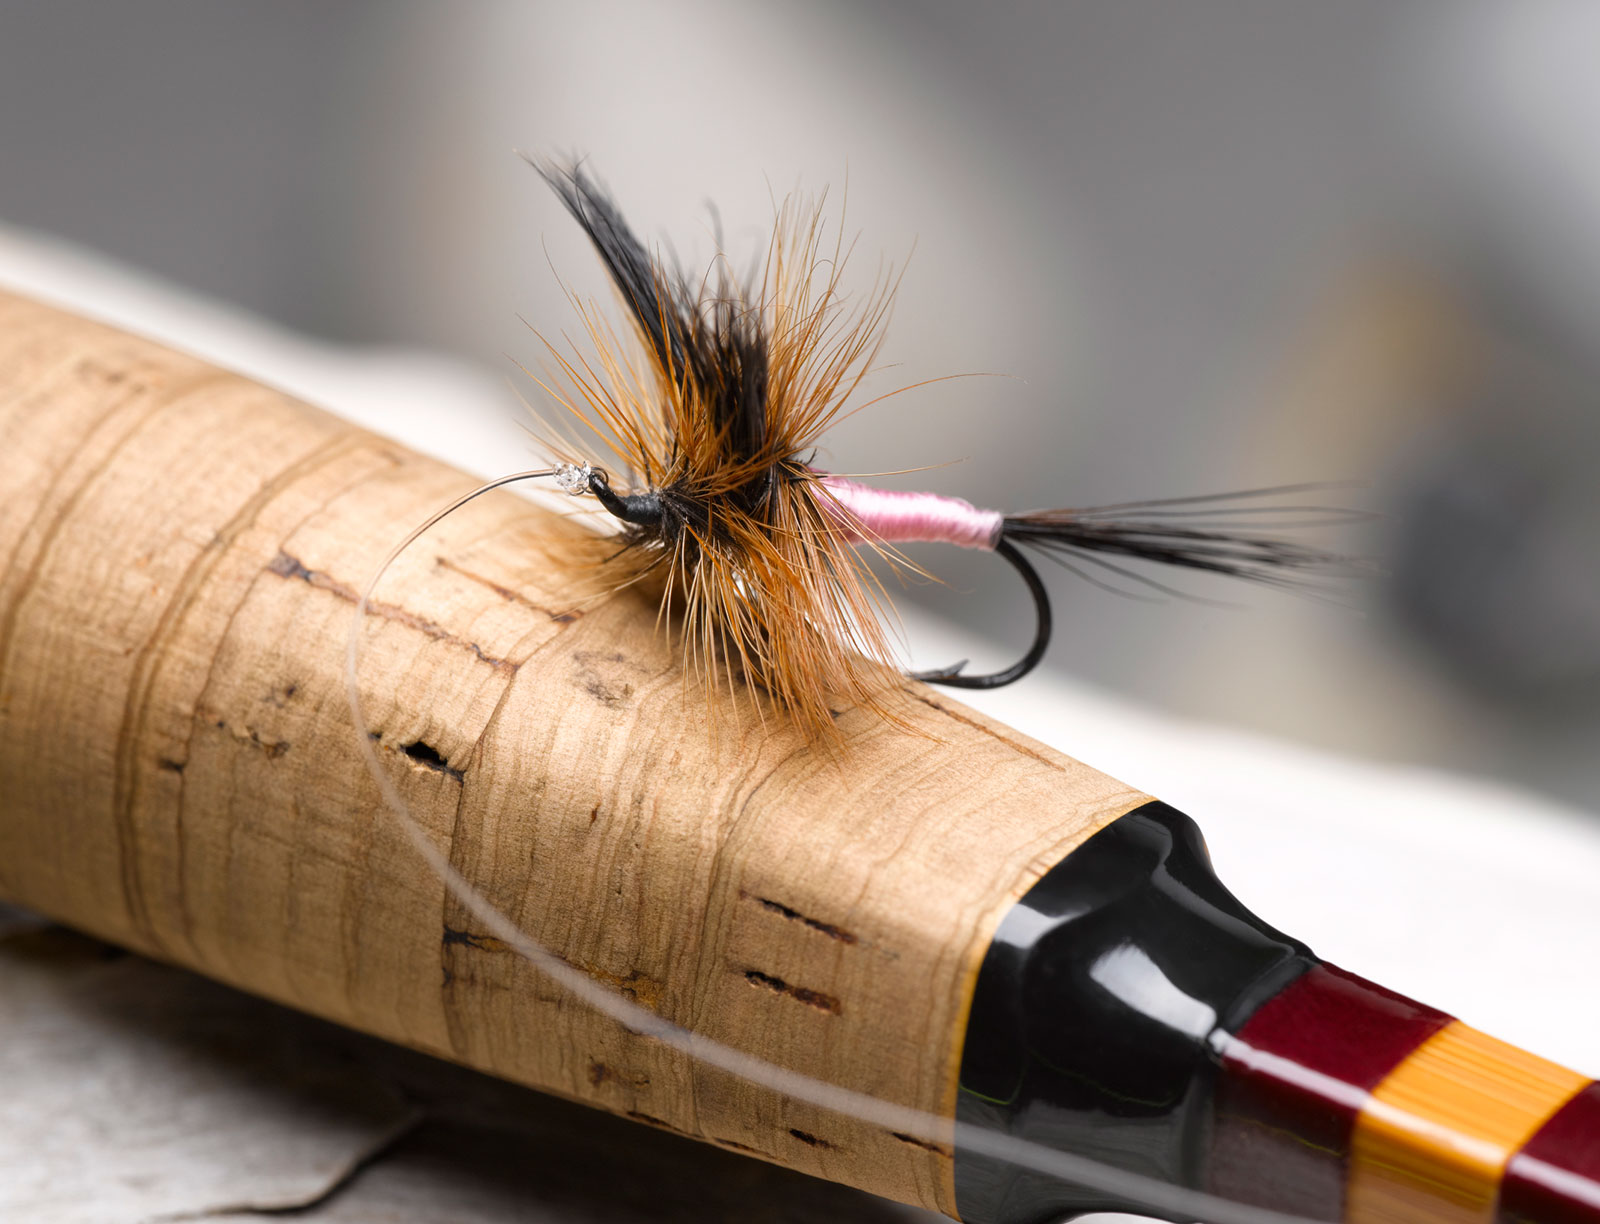 fly fishing flies - take me fishing, Fly Fishing Bait